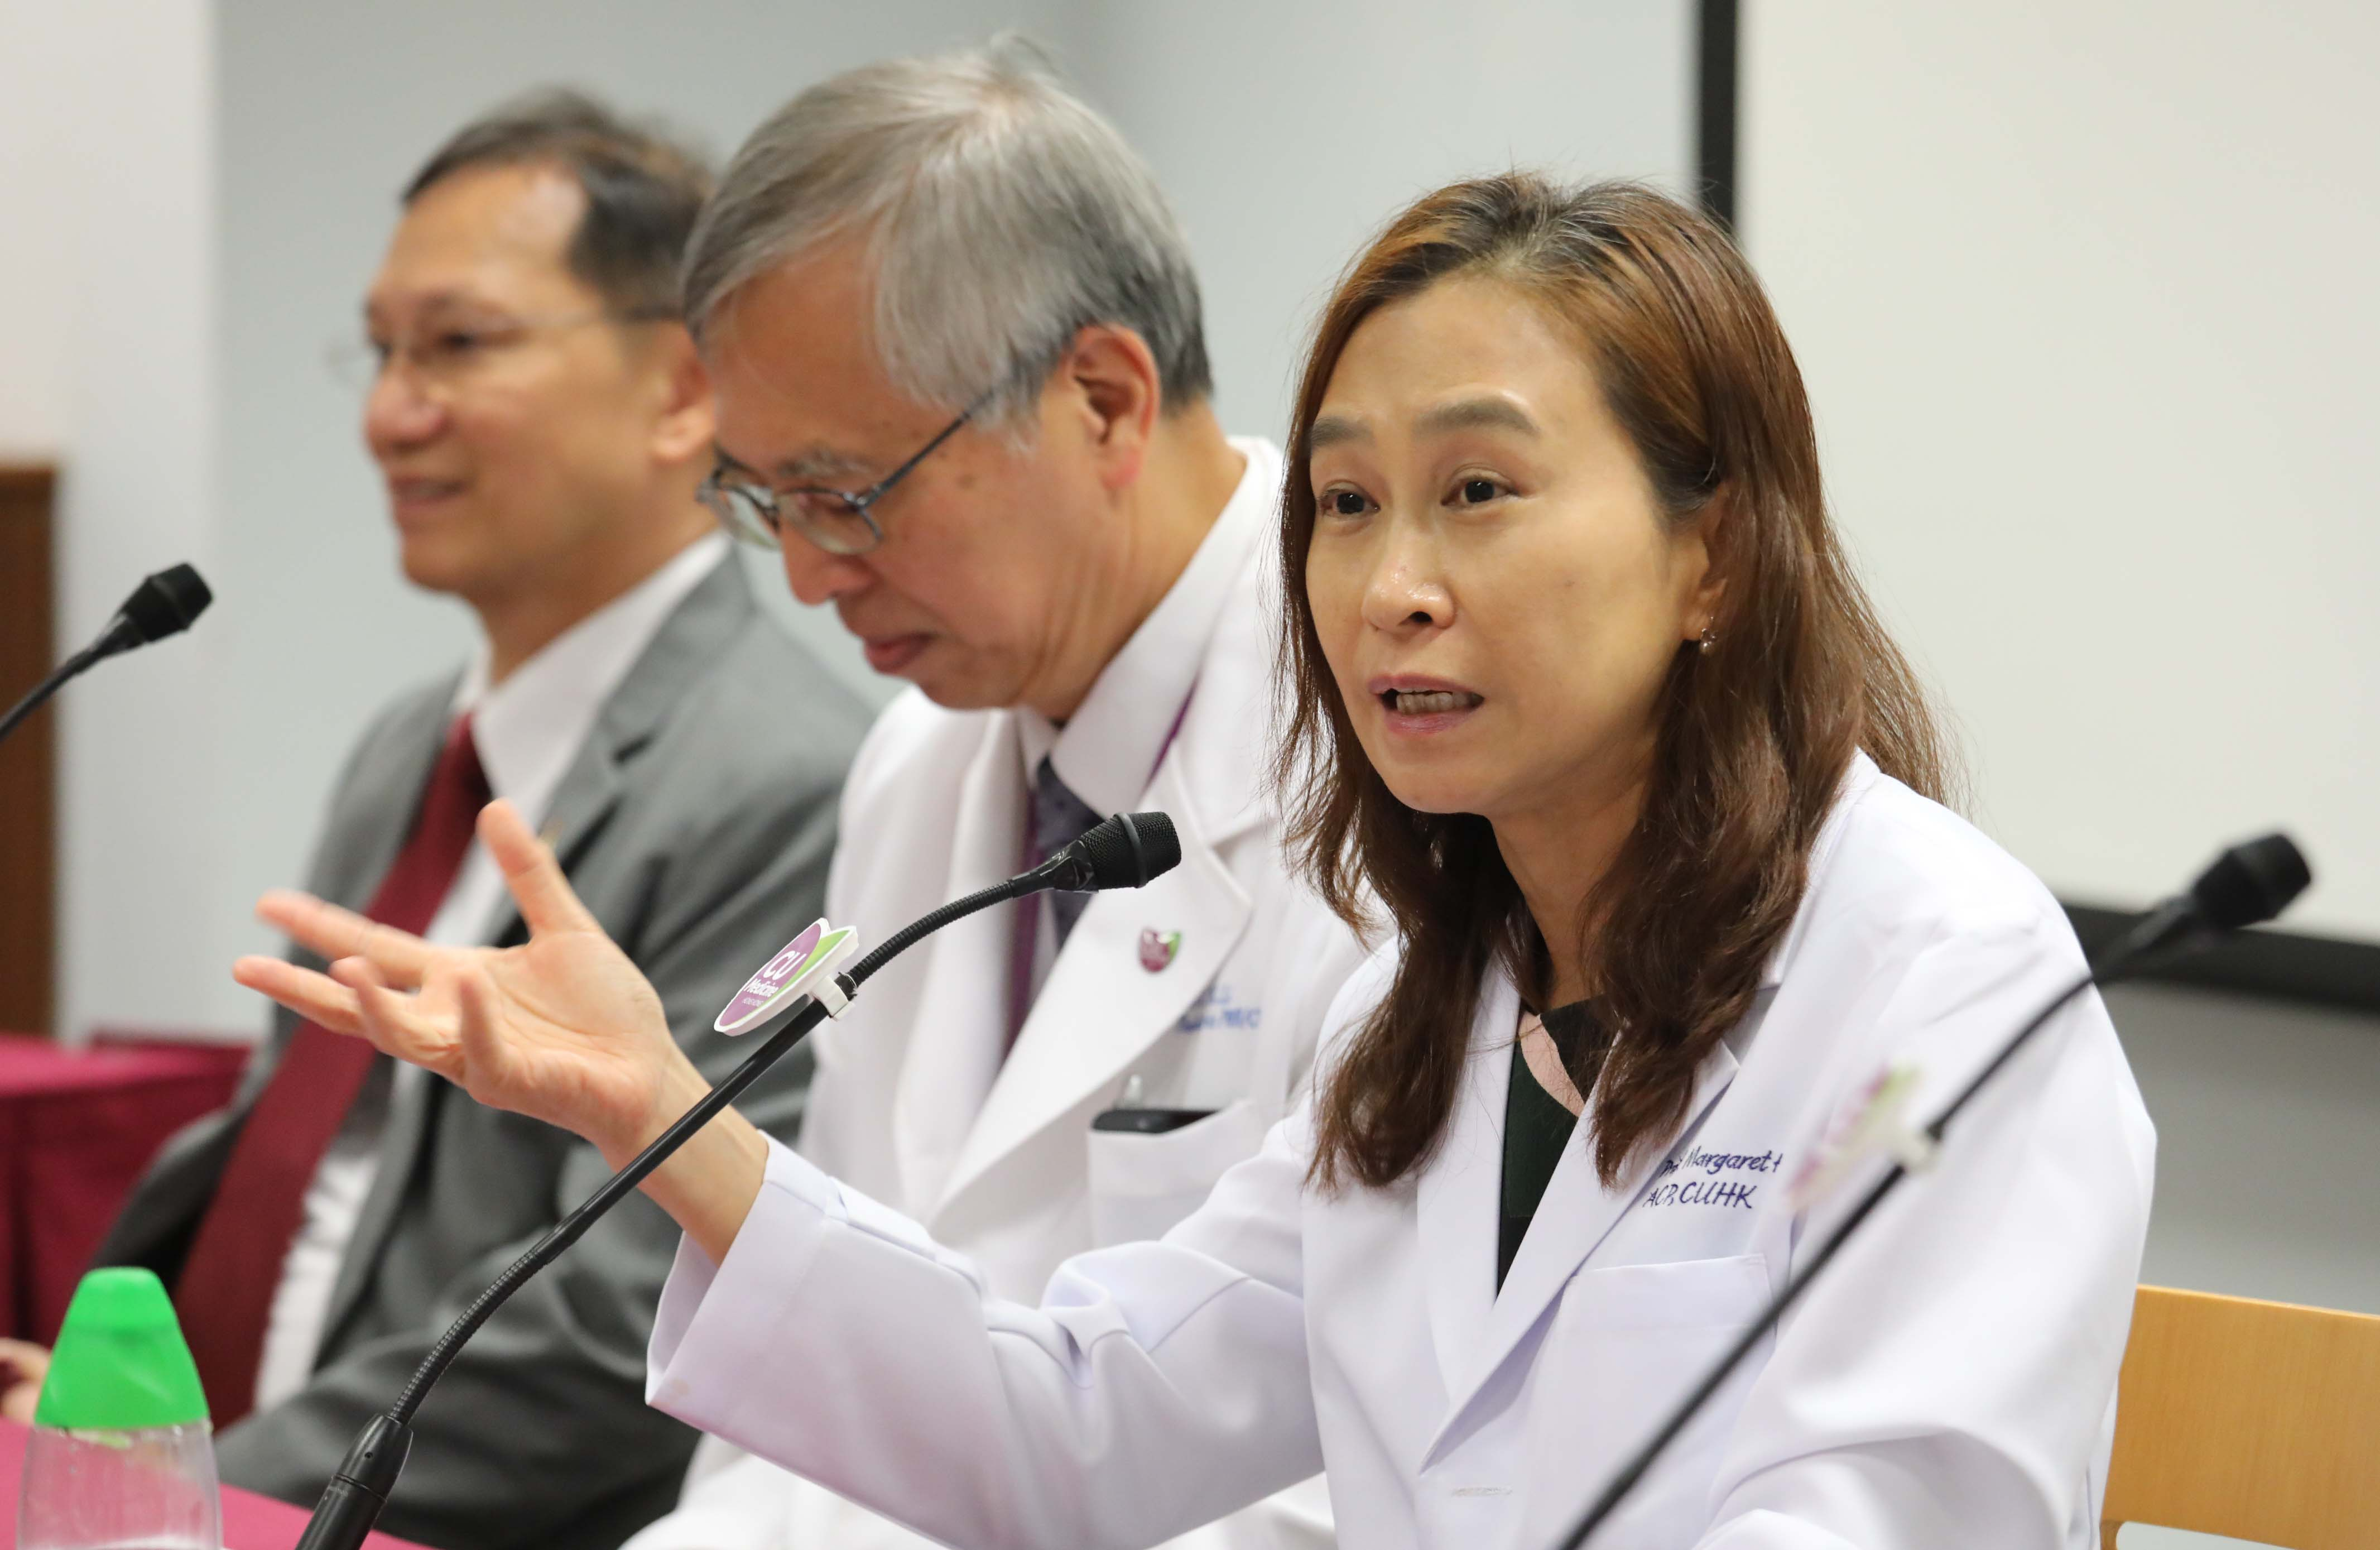 Professor Margaret NG (right), Professor of the Department of Anatomical and Cellular Pathology of the Faculty of Medicine at CUHK, explains that in CAR-T cell therapy, a patient's T cells are genetically modified to build in radar-like receptors on the cells. The T-cells can recognise and attack cancer cells after being reinfused into the patient's body.